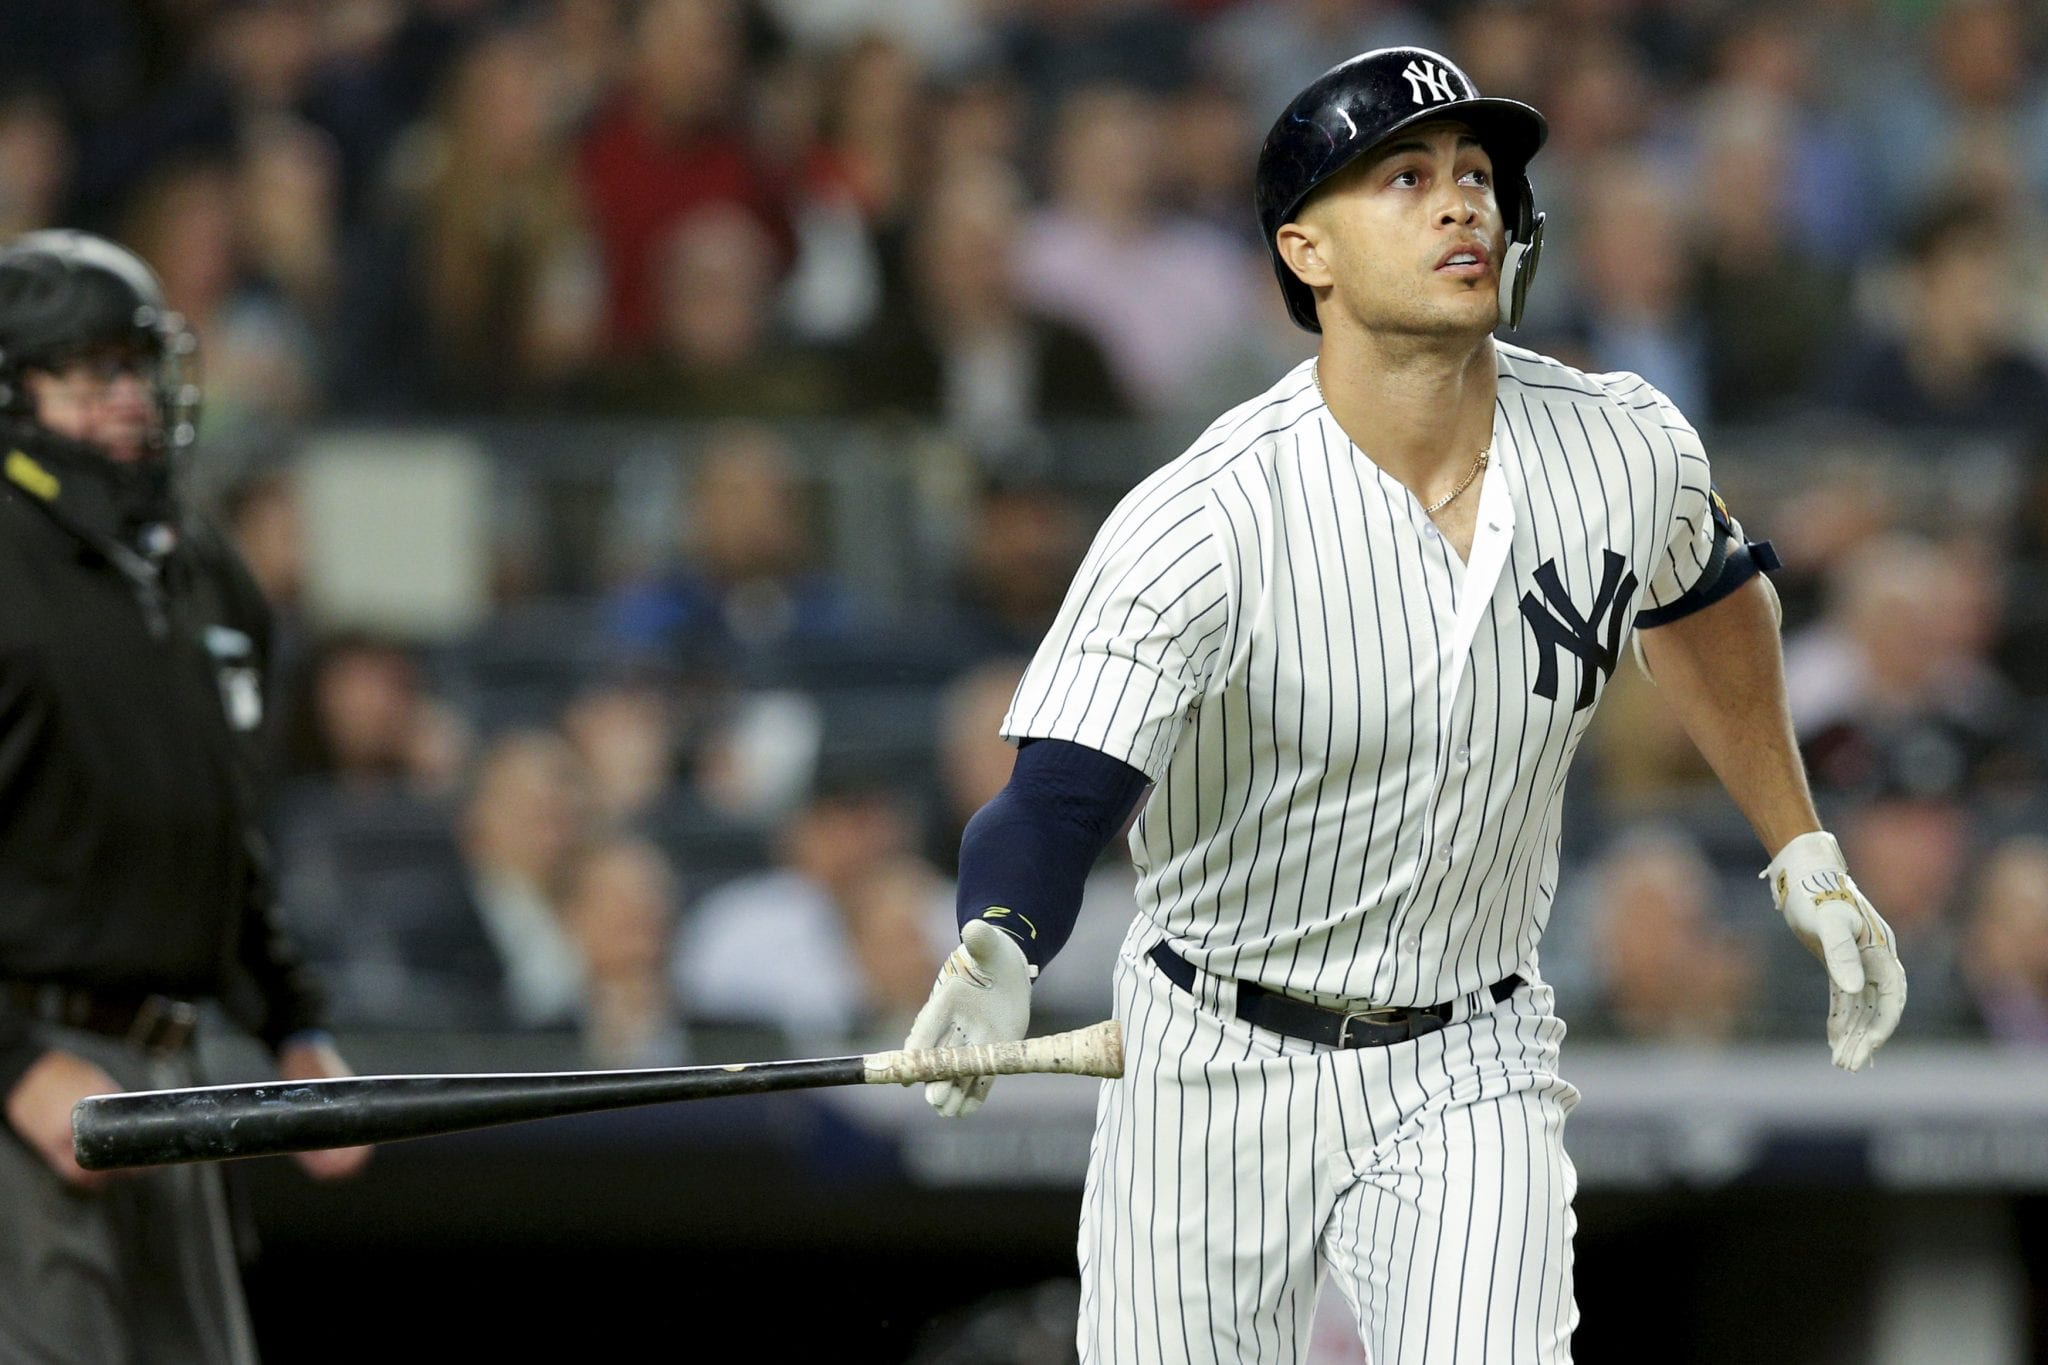 New York Yankees, Giancarlo Stanton